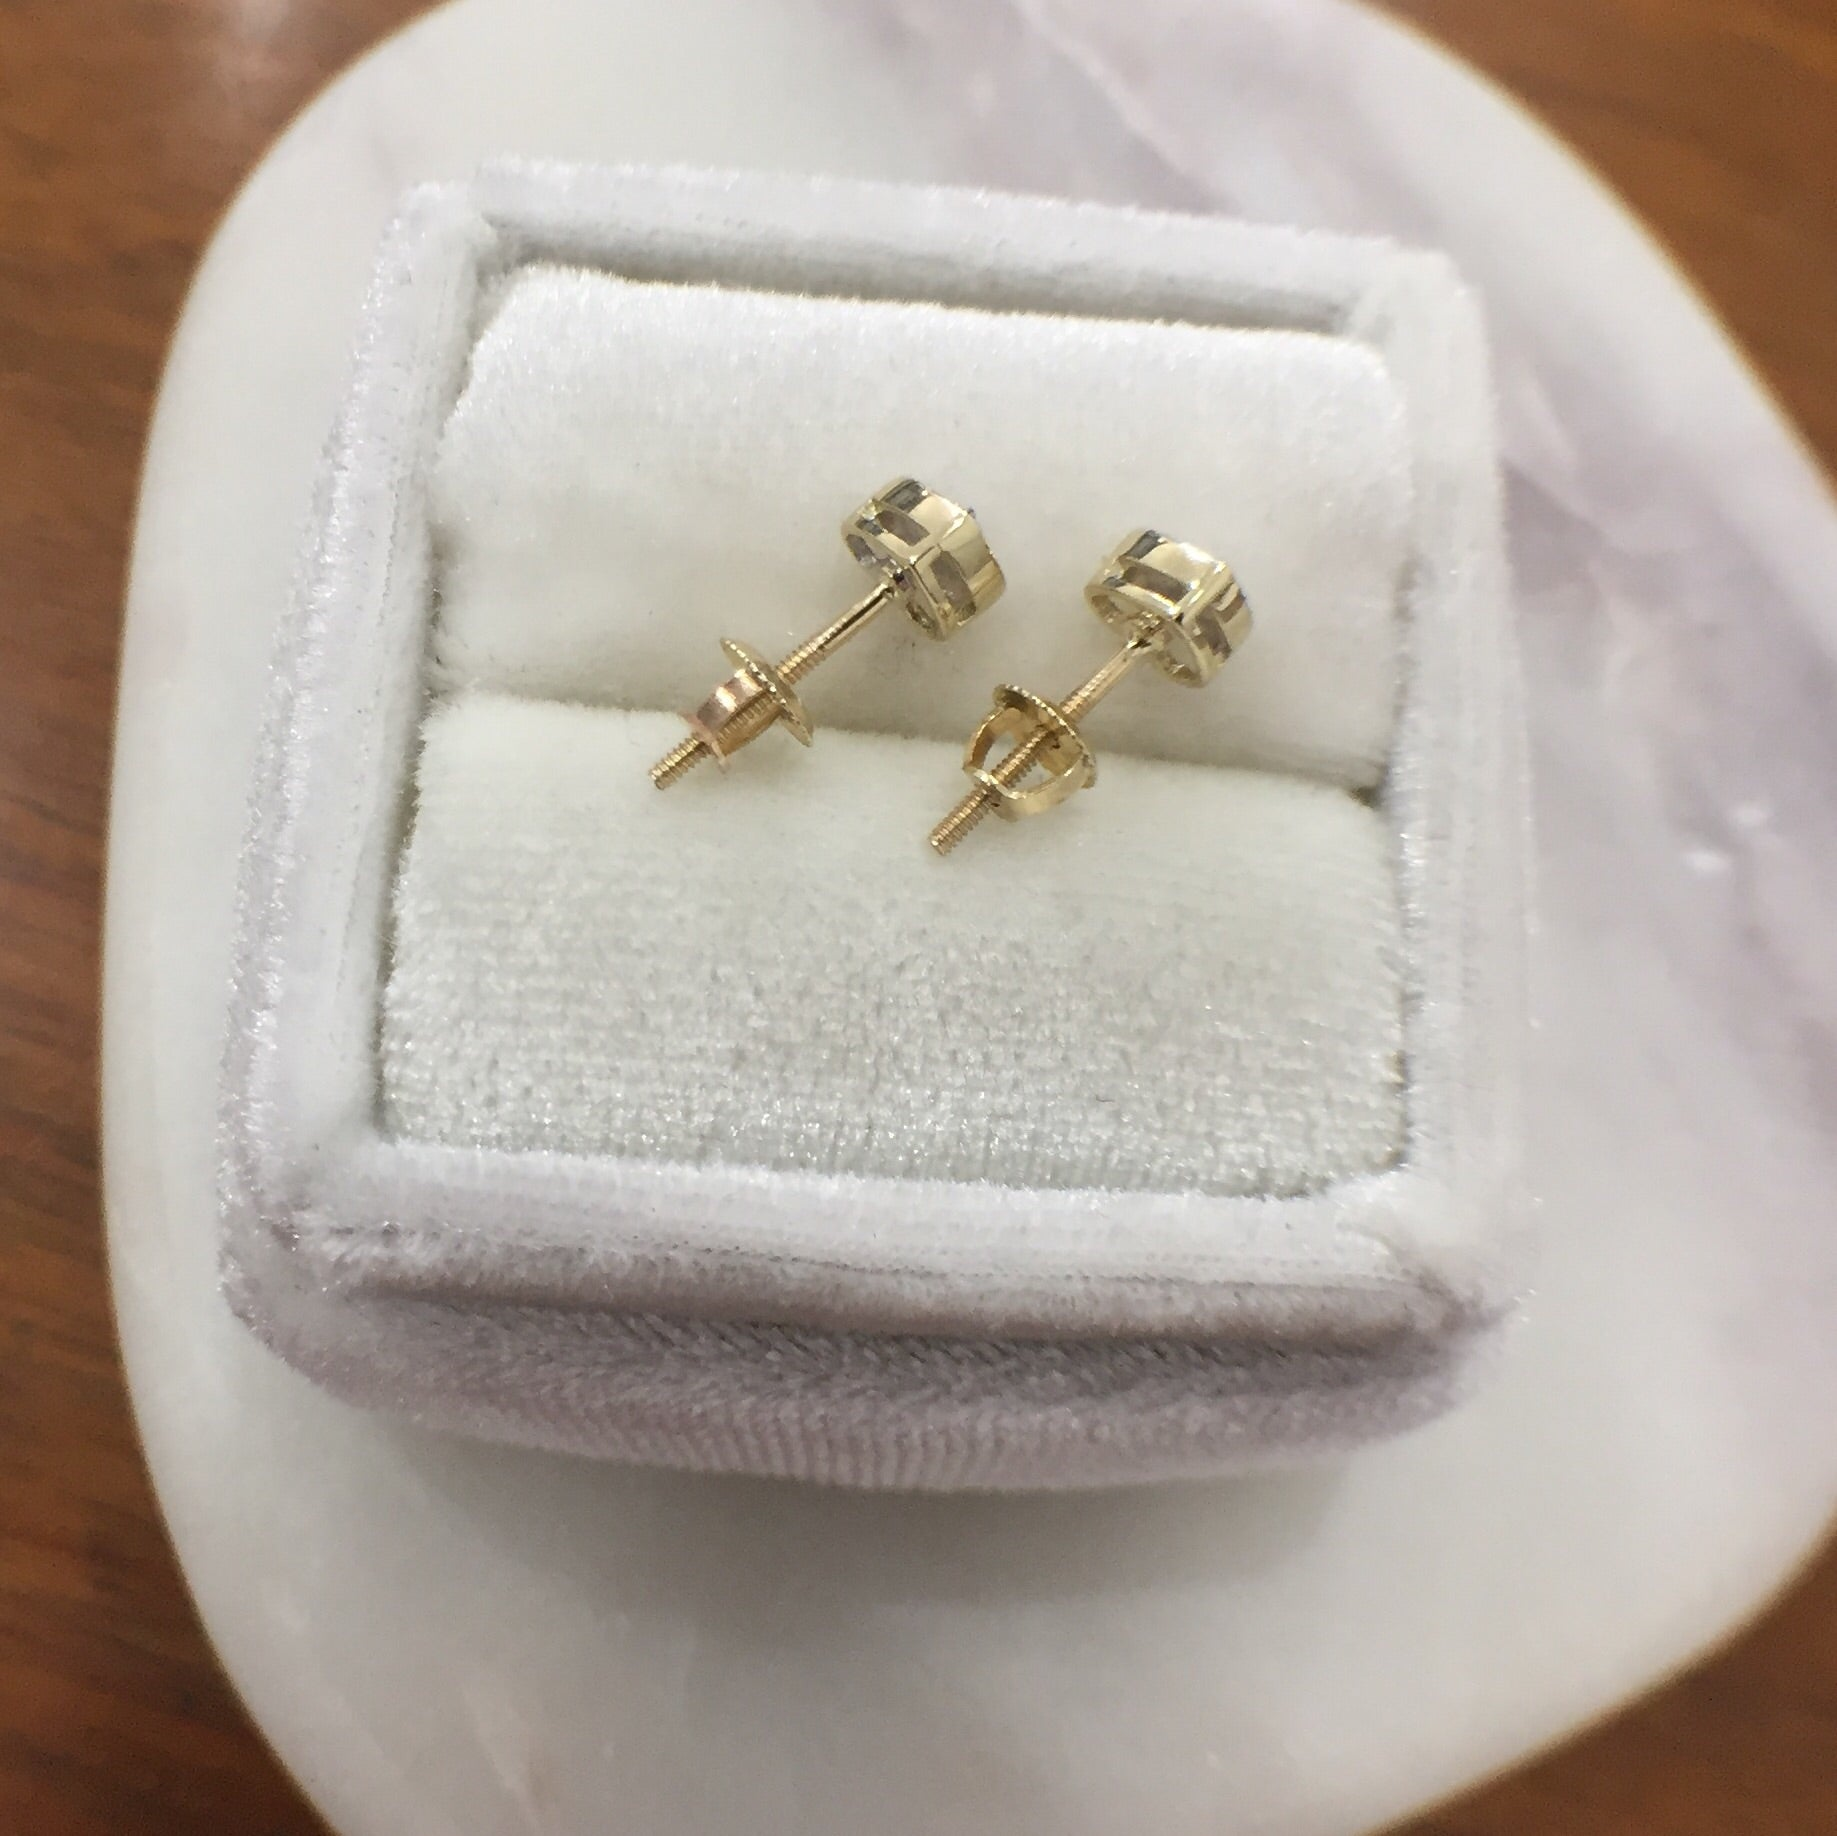 Heart-shaped Stud Earrings with Diamonds in 10kt Gold